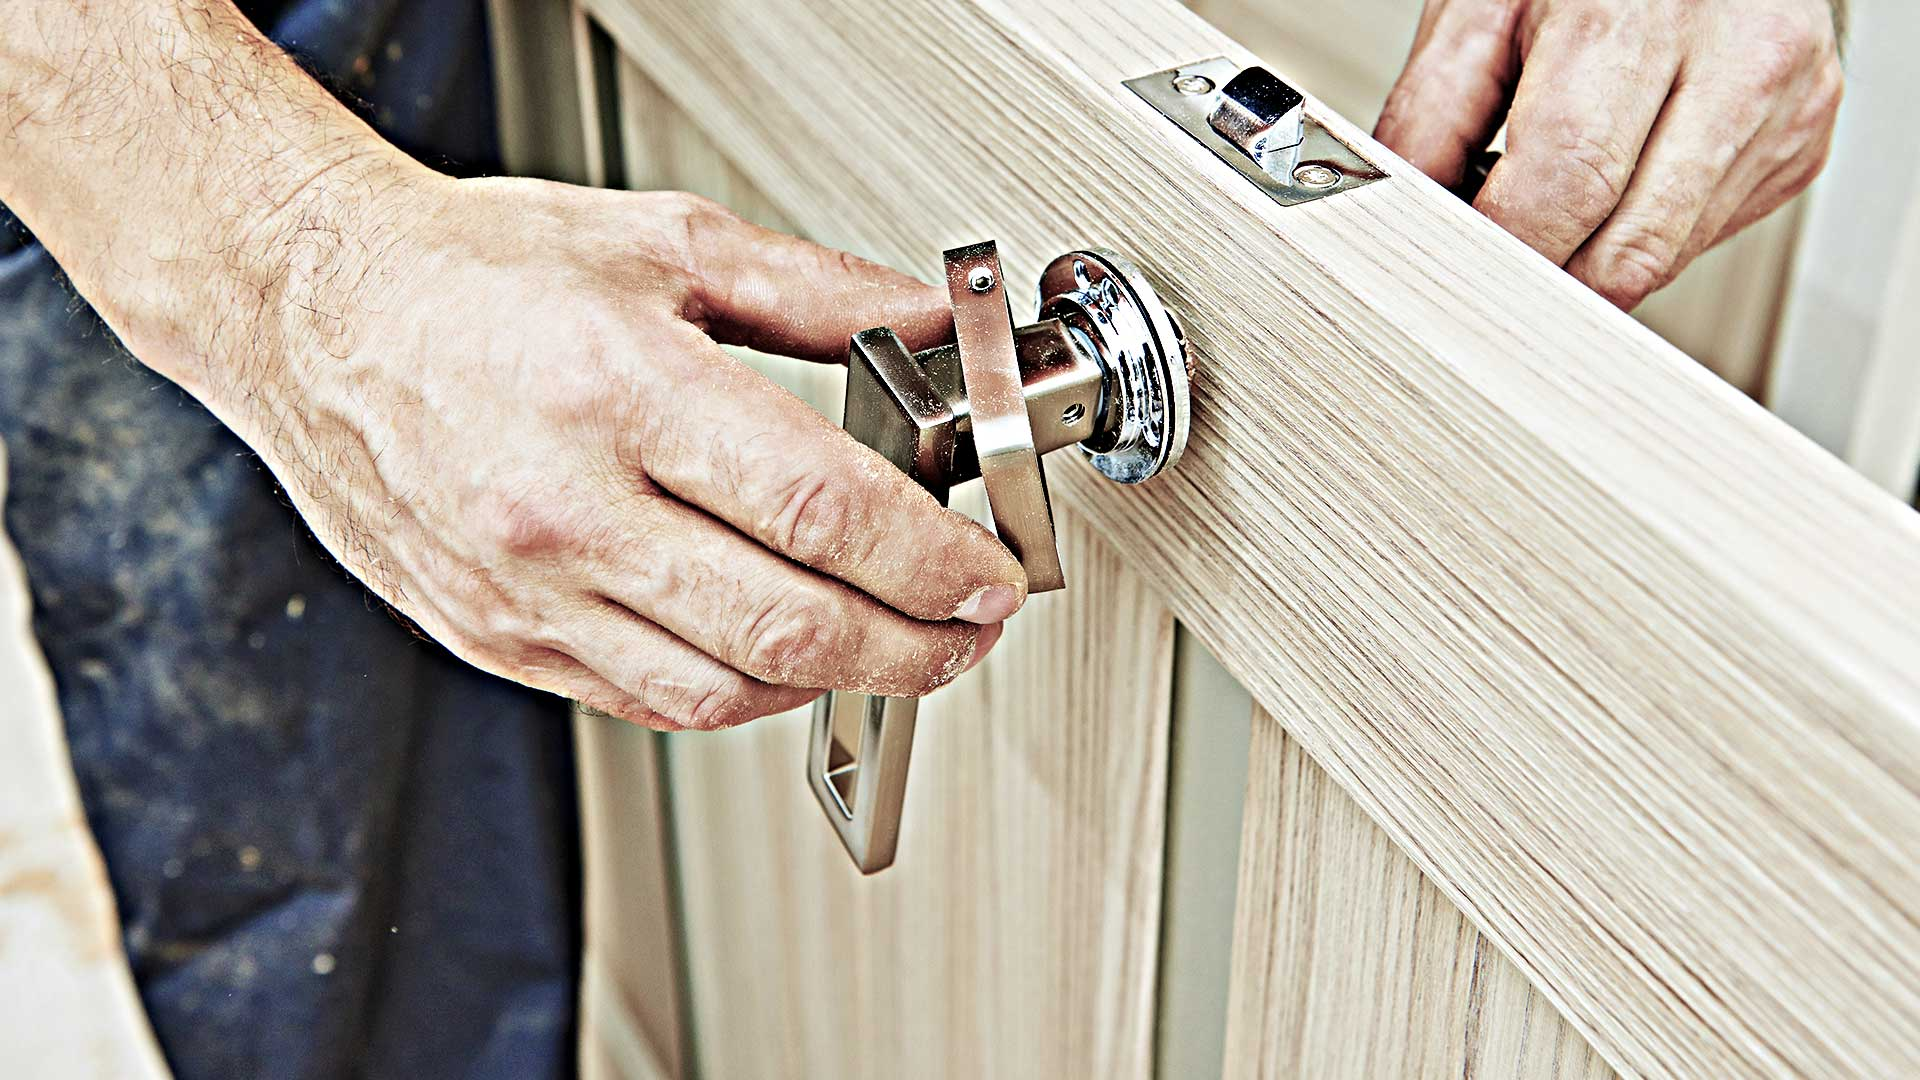 Fixing lock and handle on door